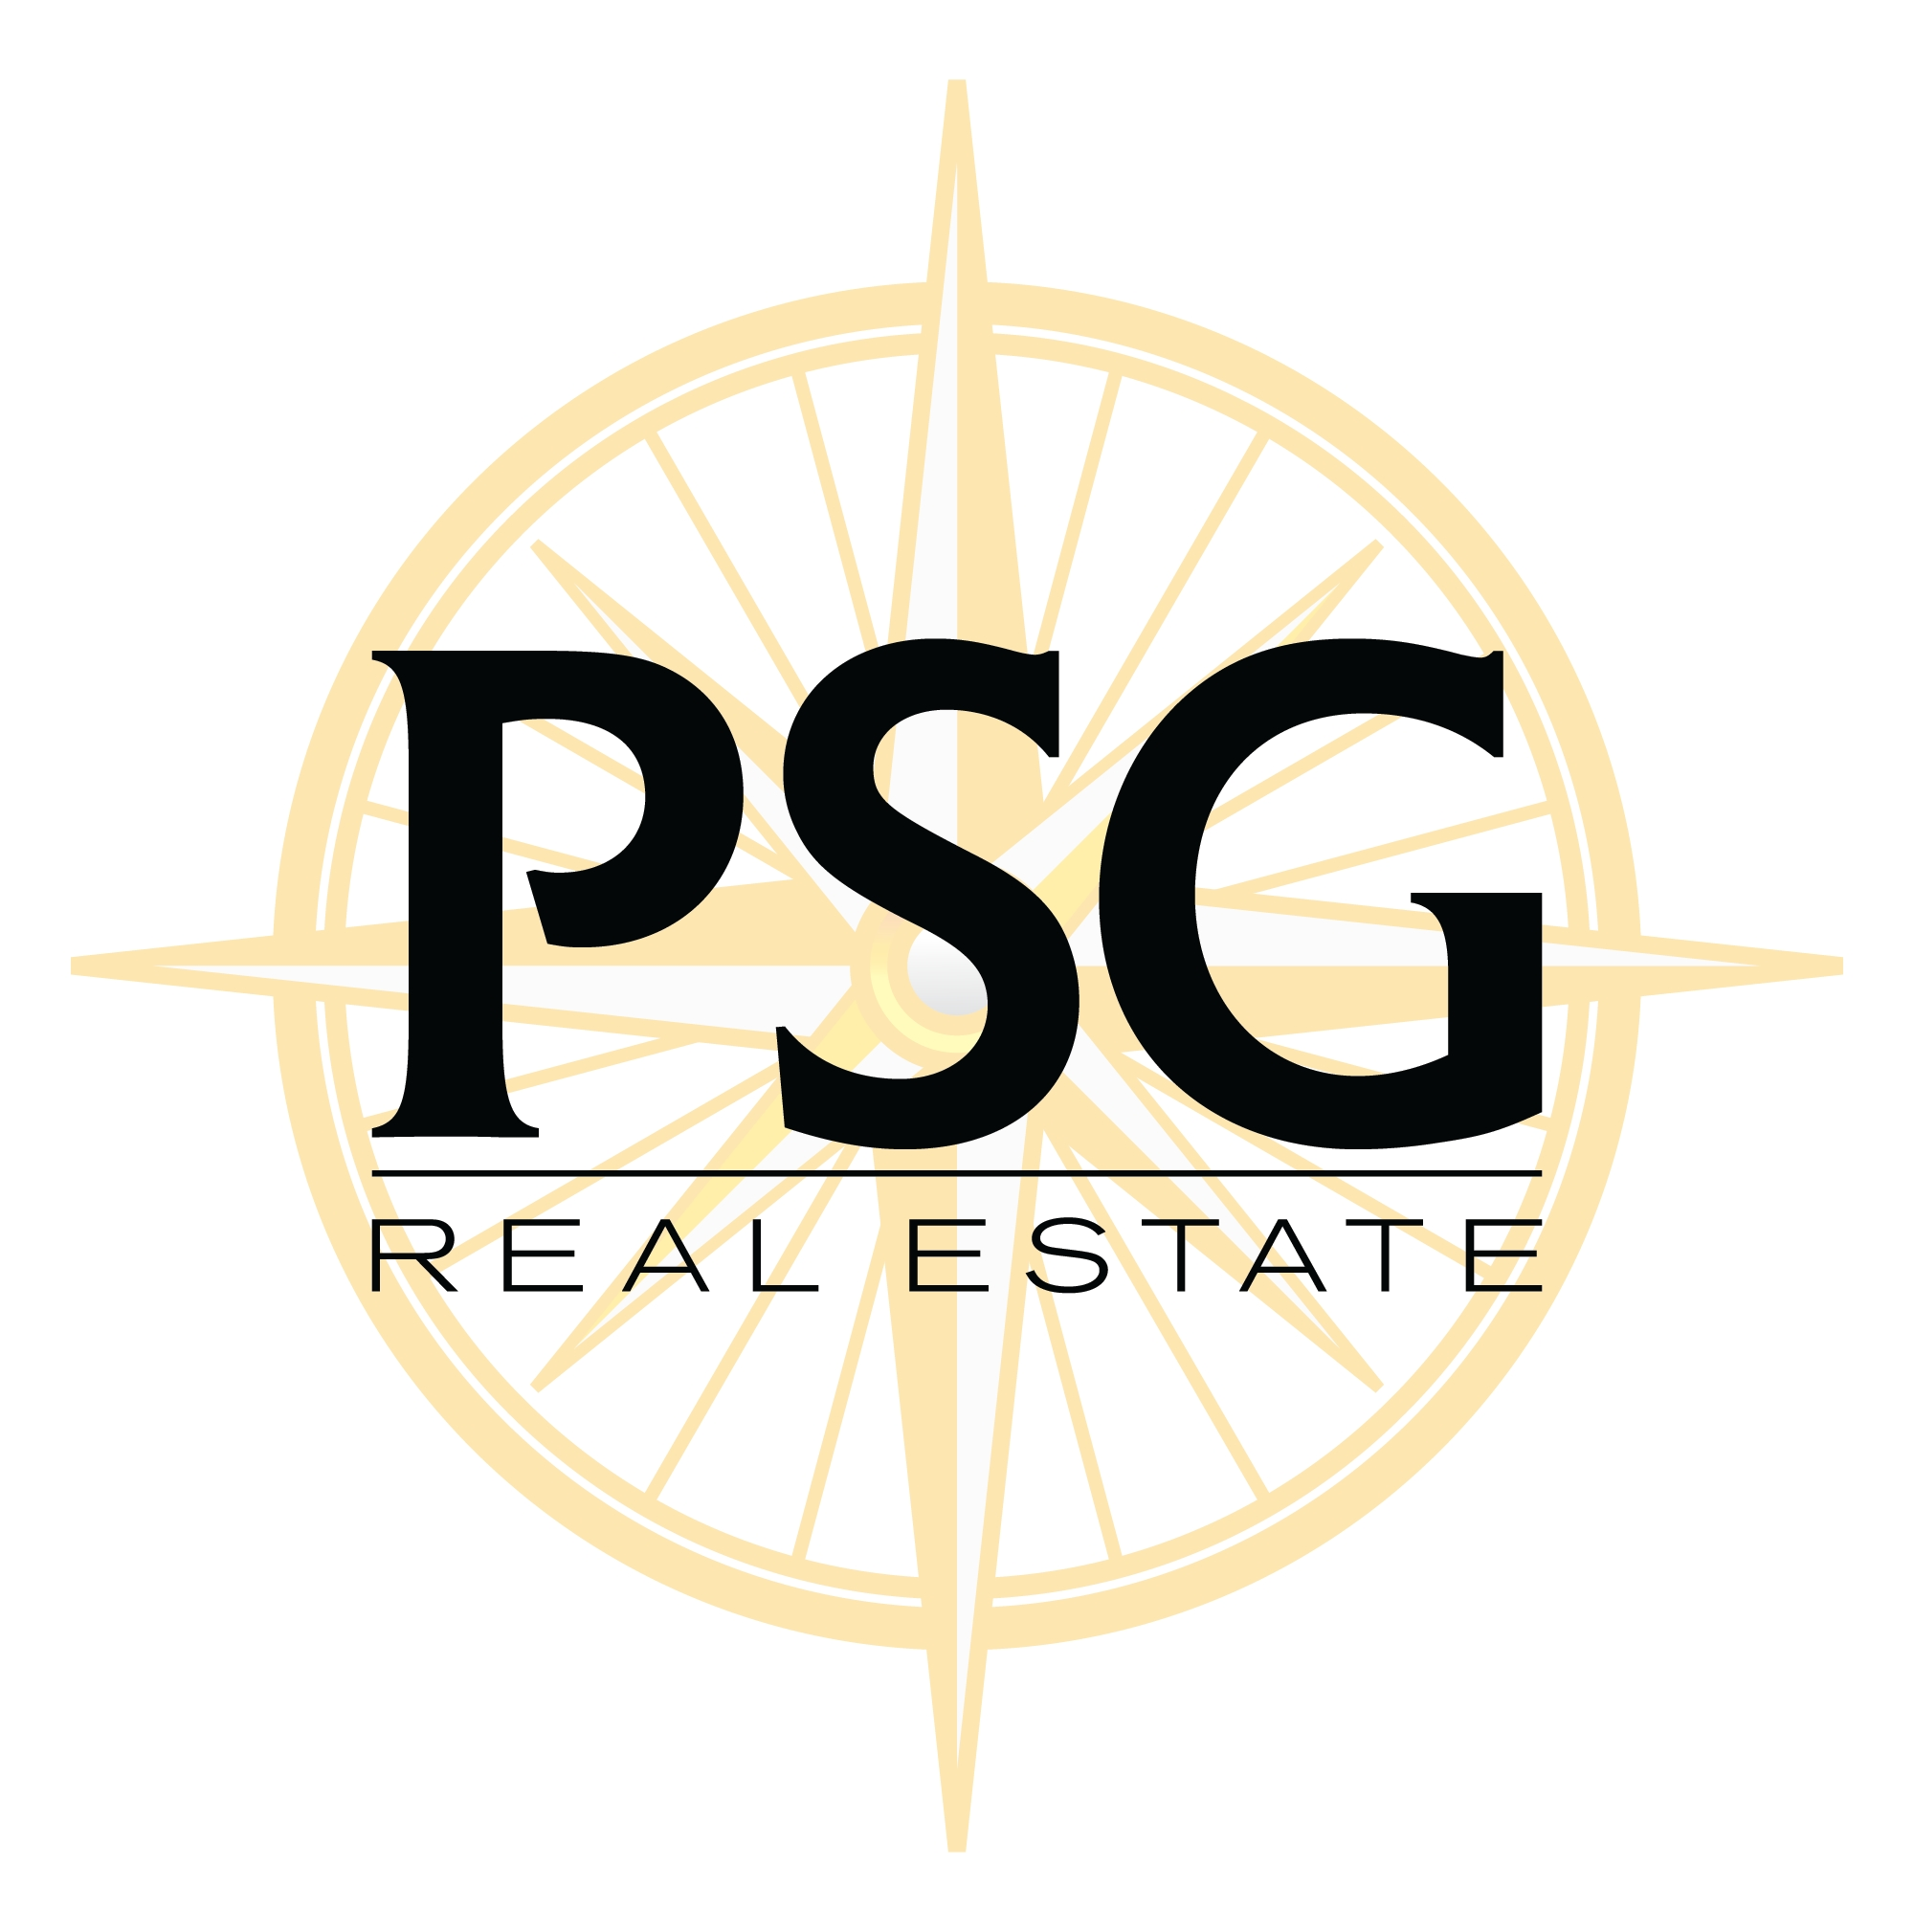 Karen Bayles - Point South Real Estate Logo